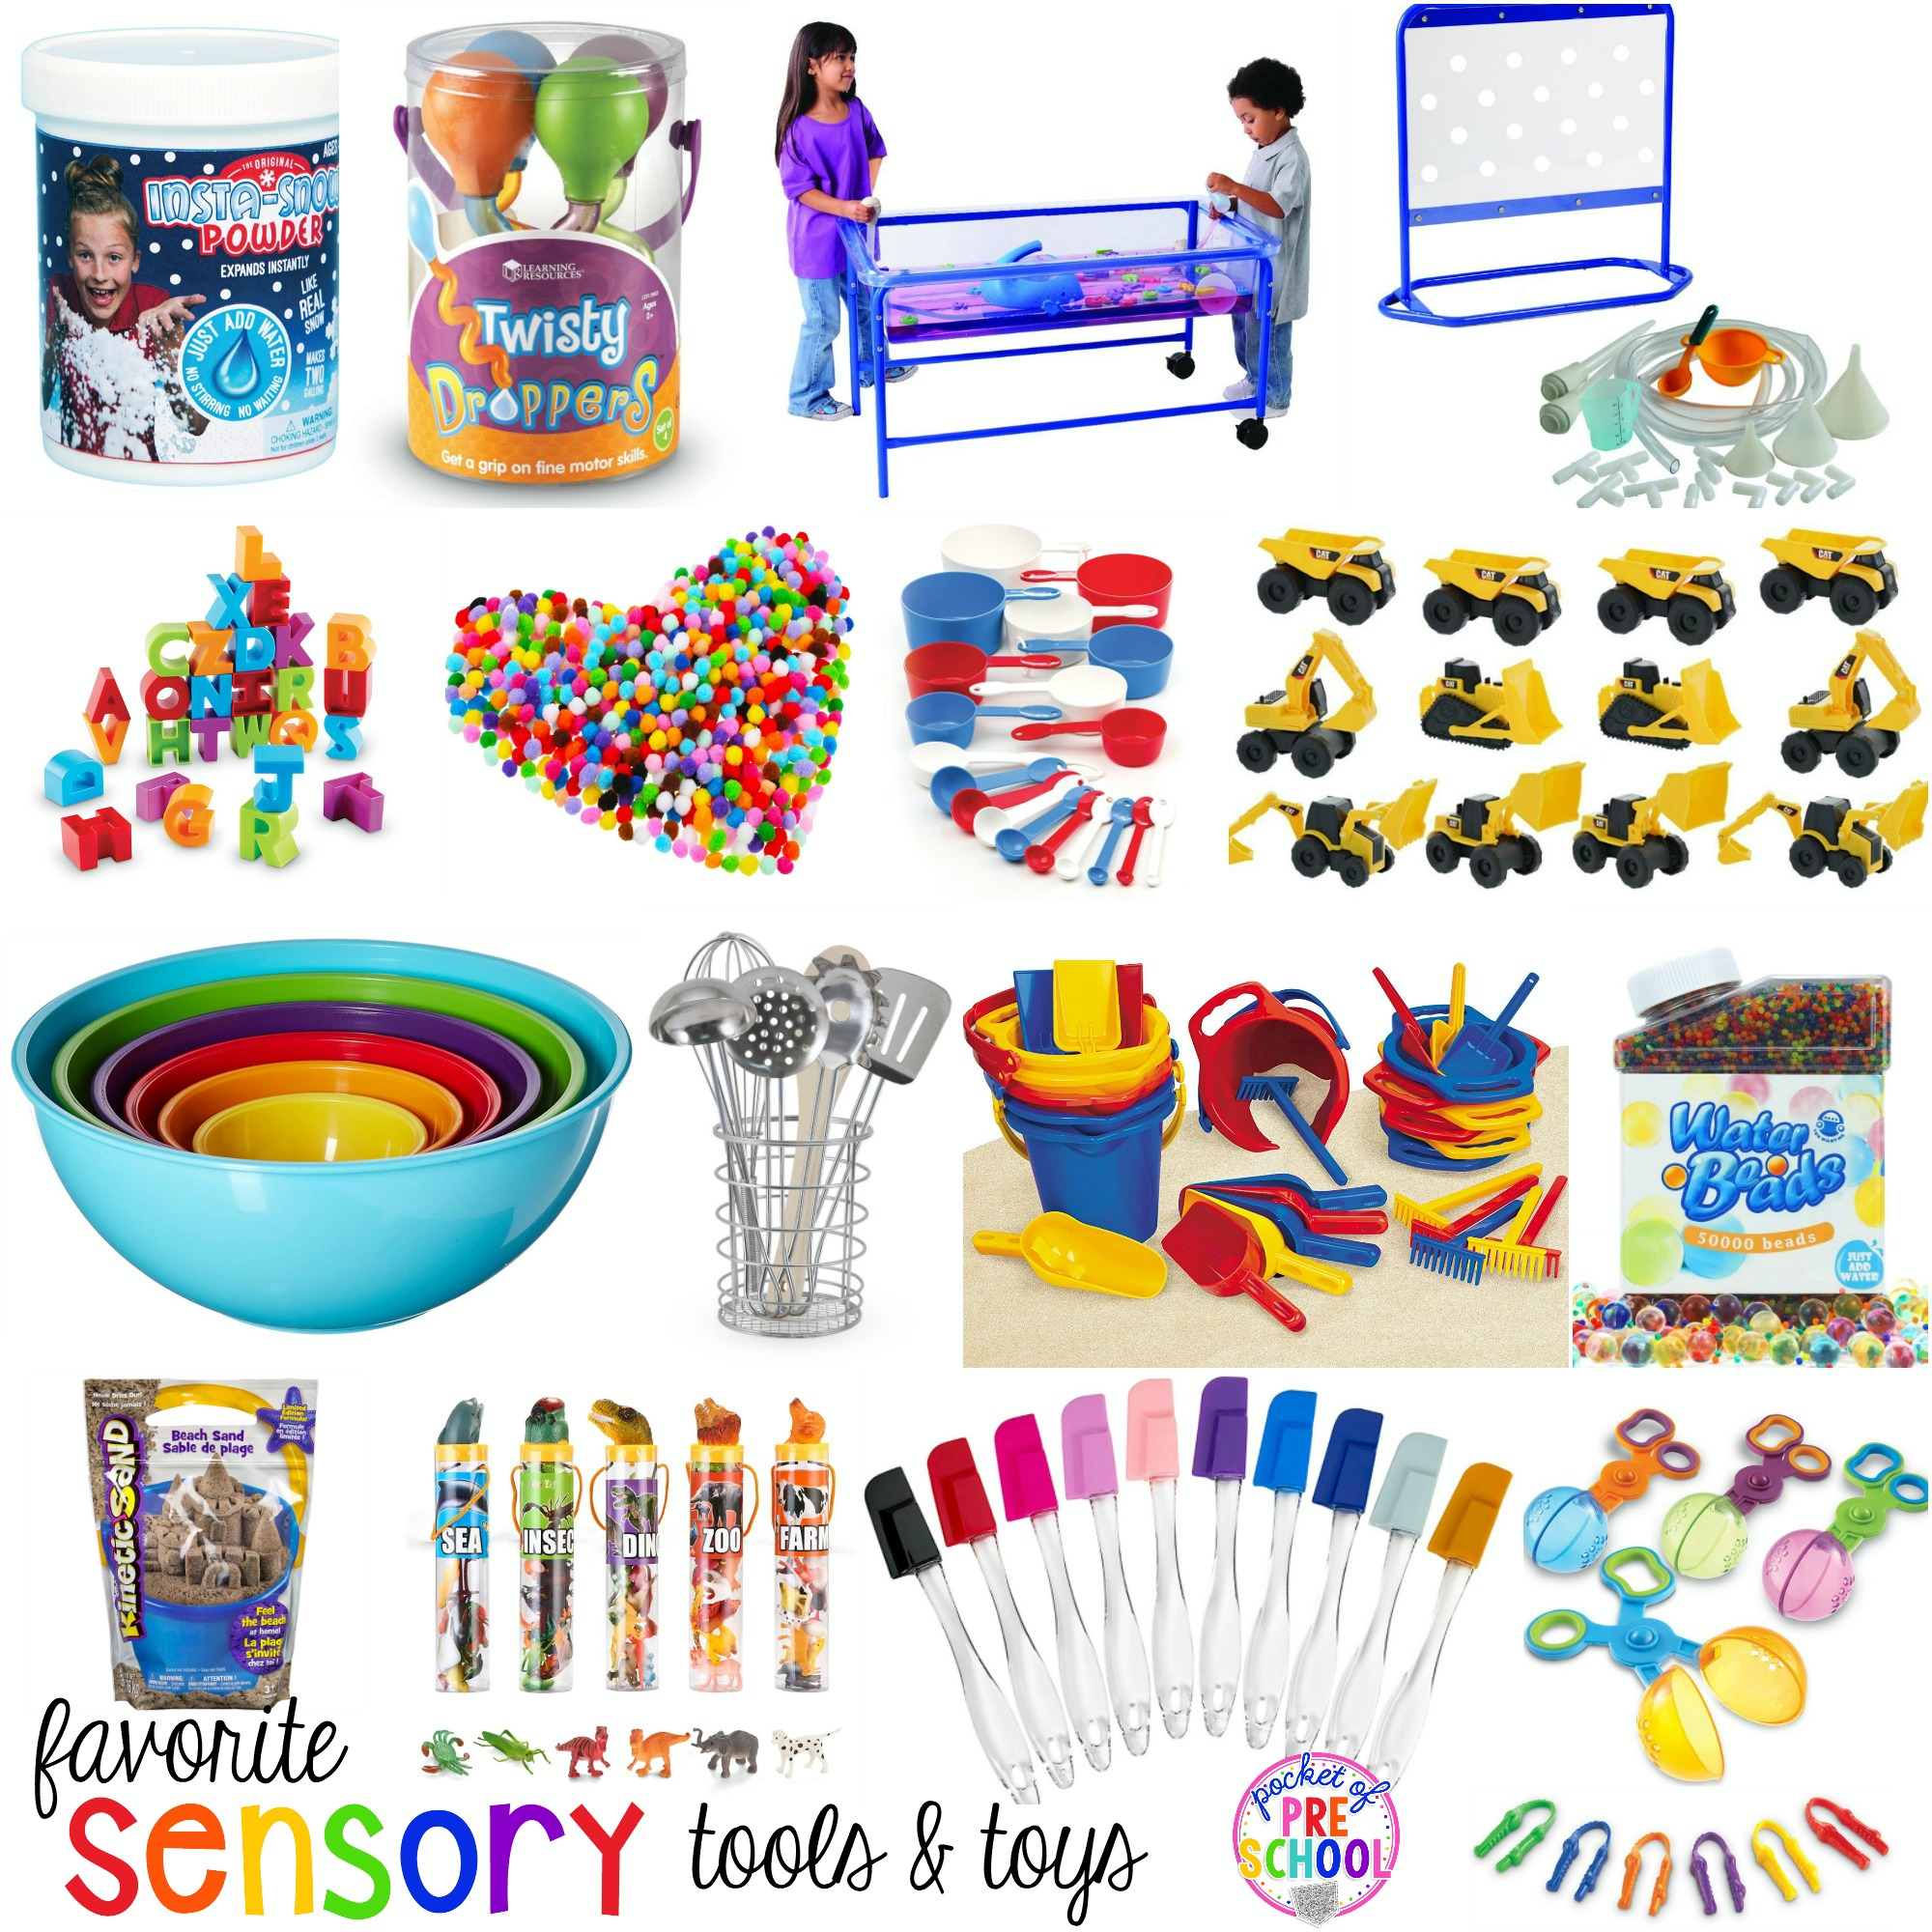 Toys For Preschoolers : Favorite sensory table tools and toys pocket of preschool